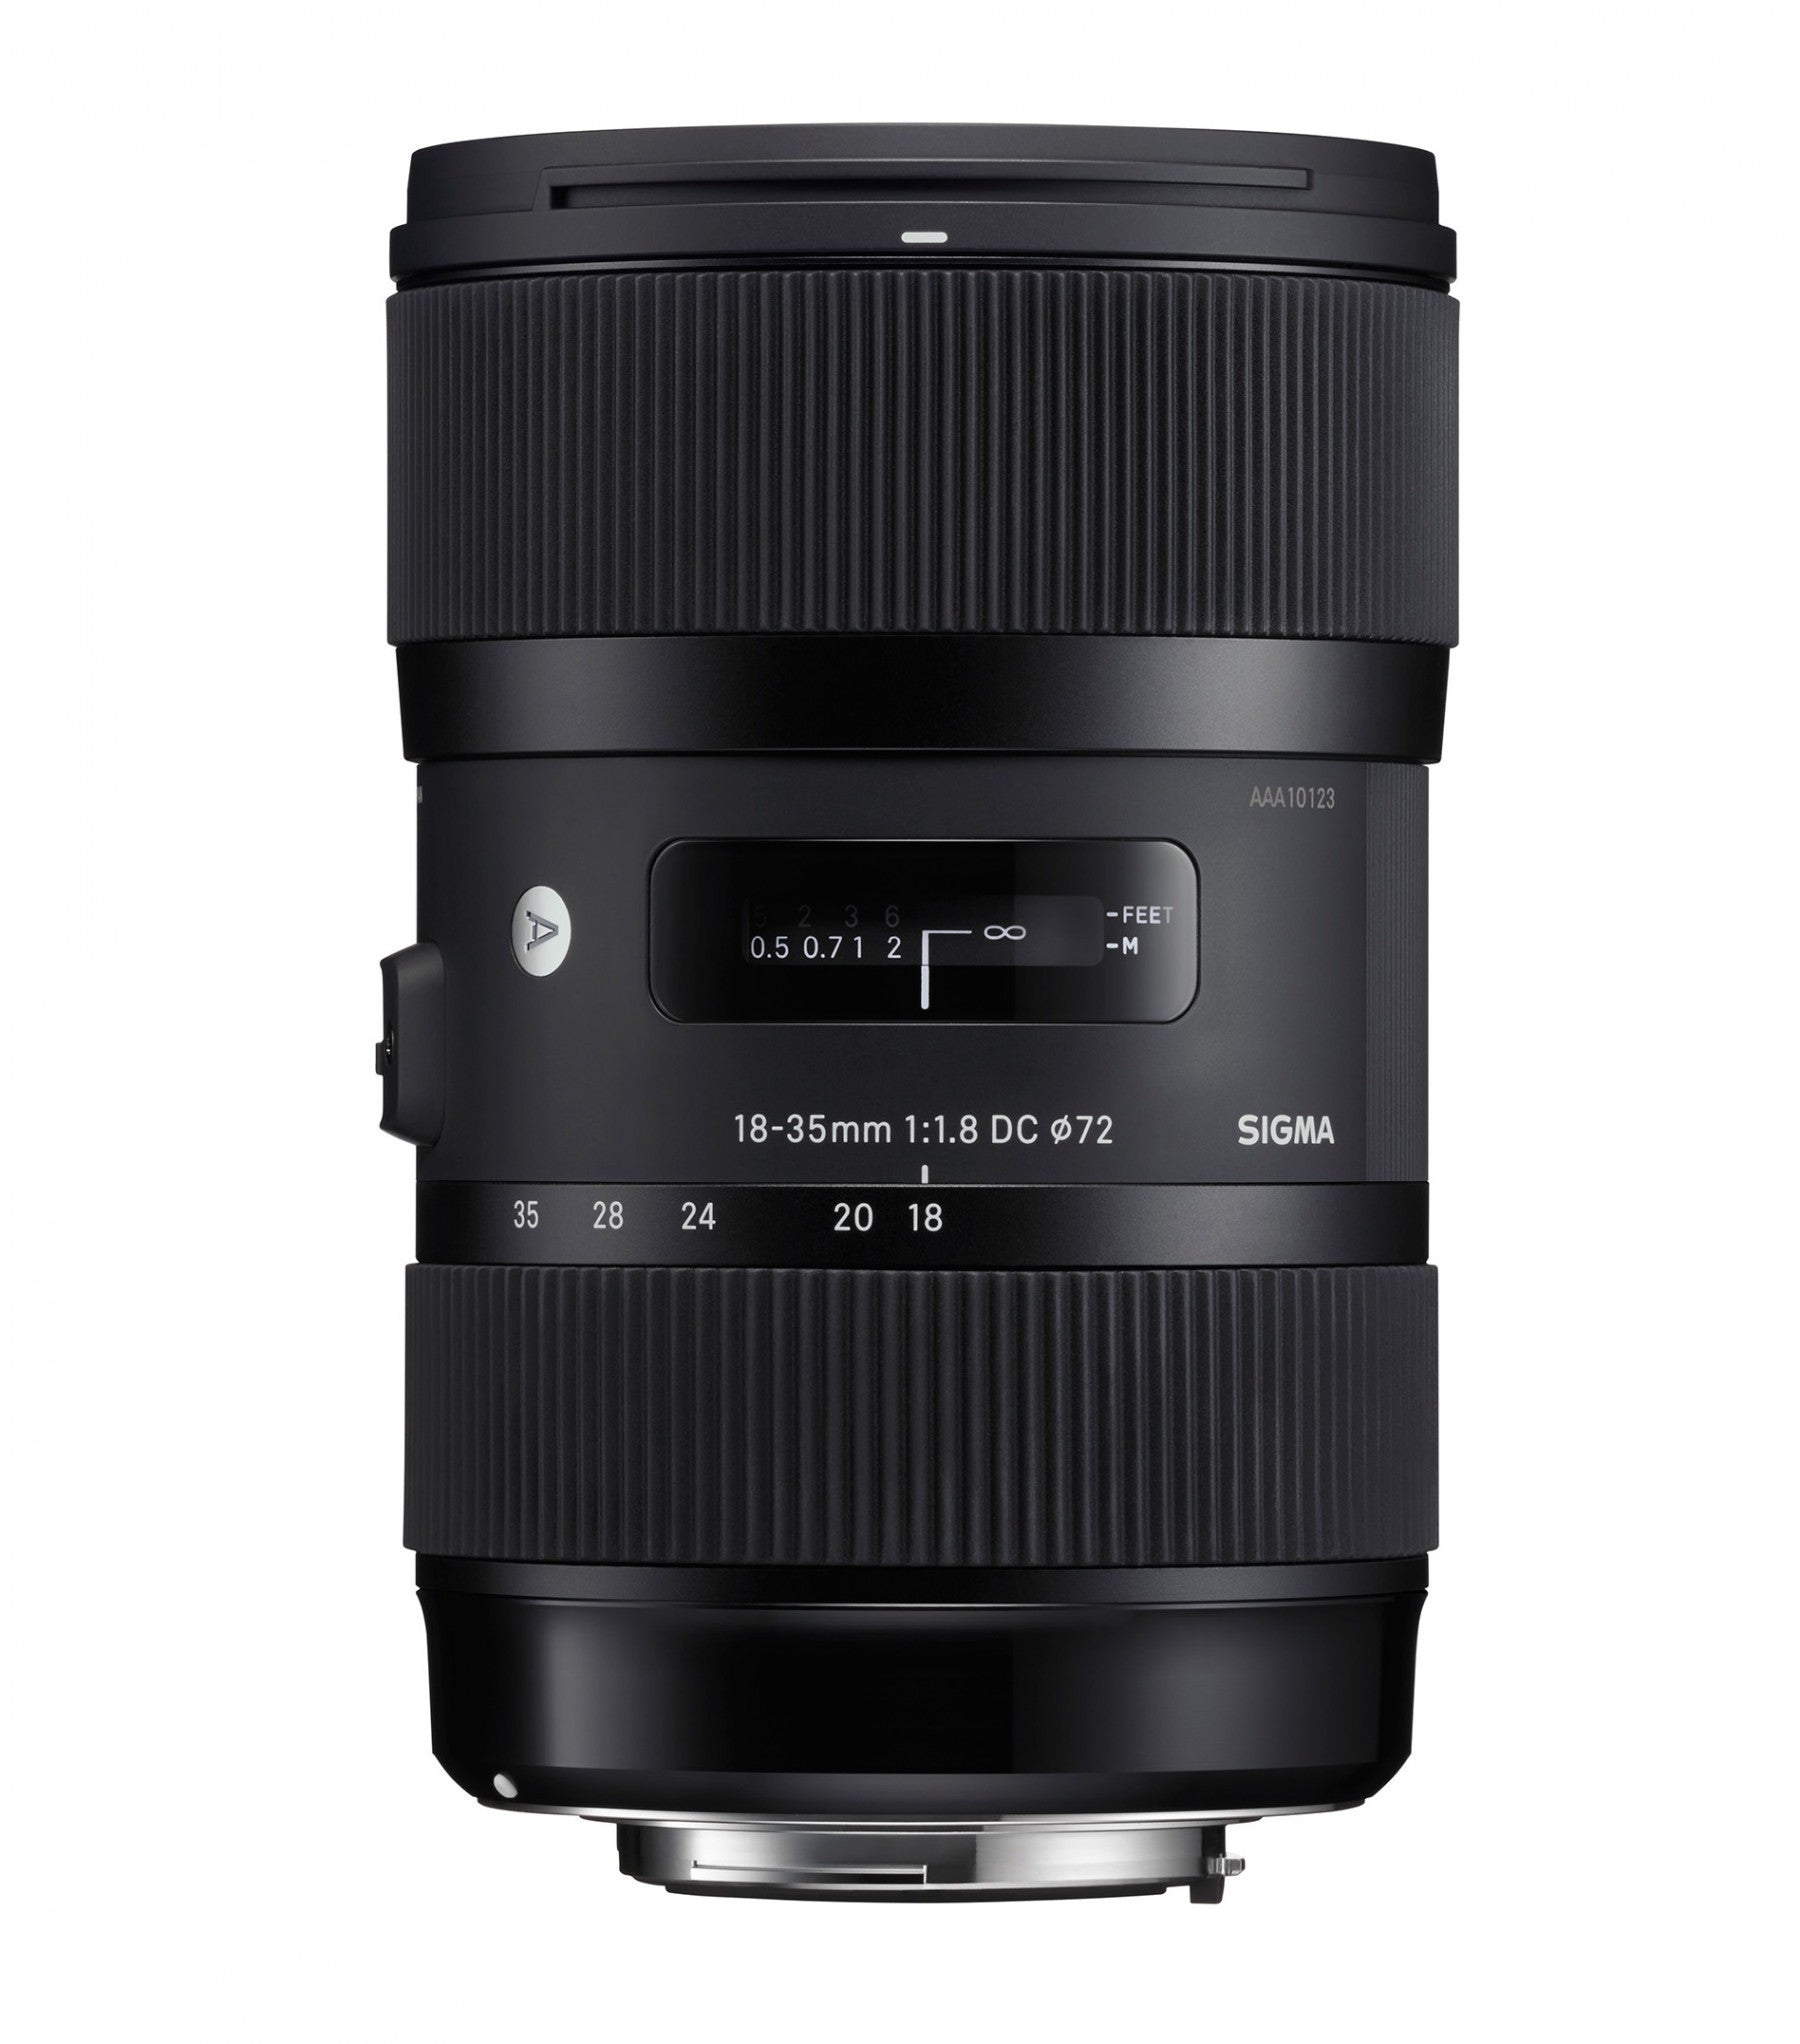 Sigma 18-35mm F1.8 ART DC HSM (Nikon)